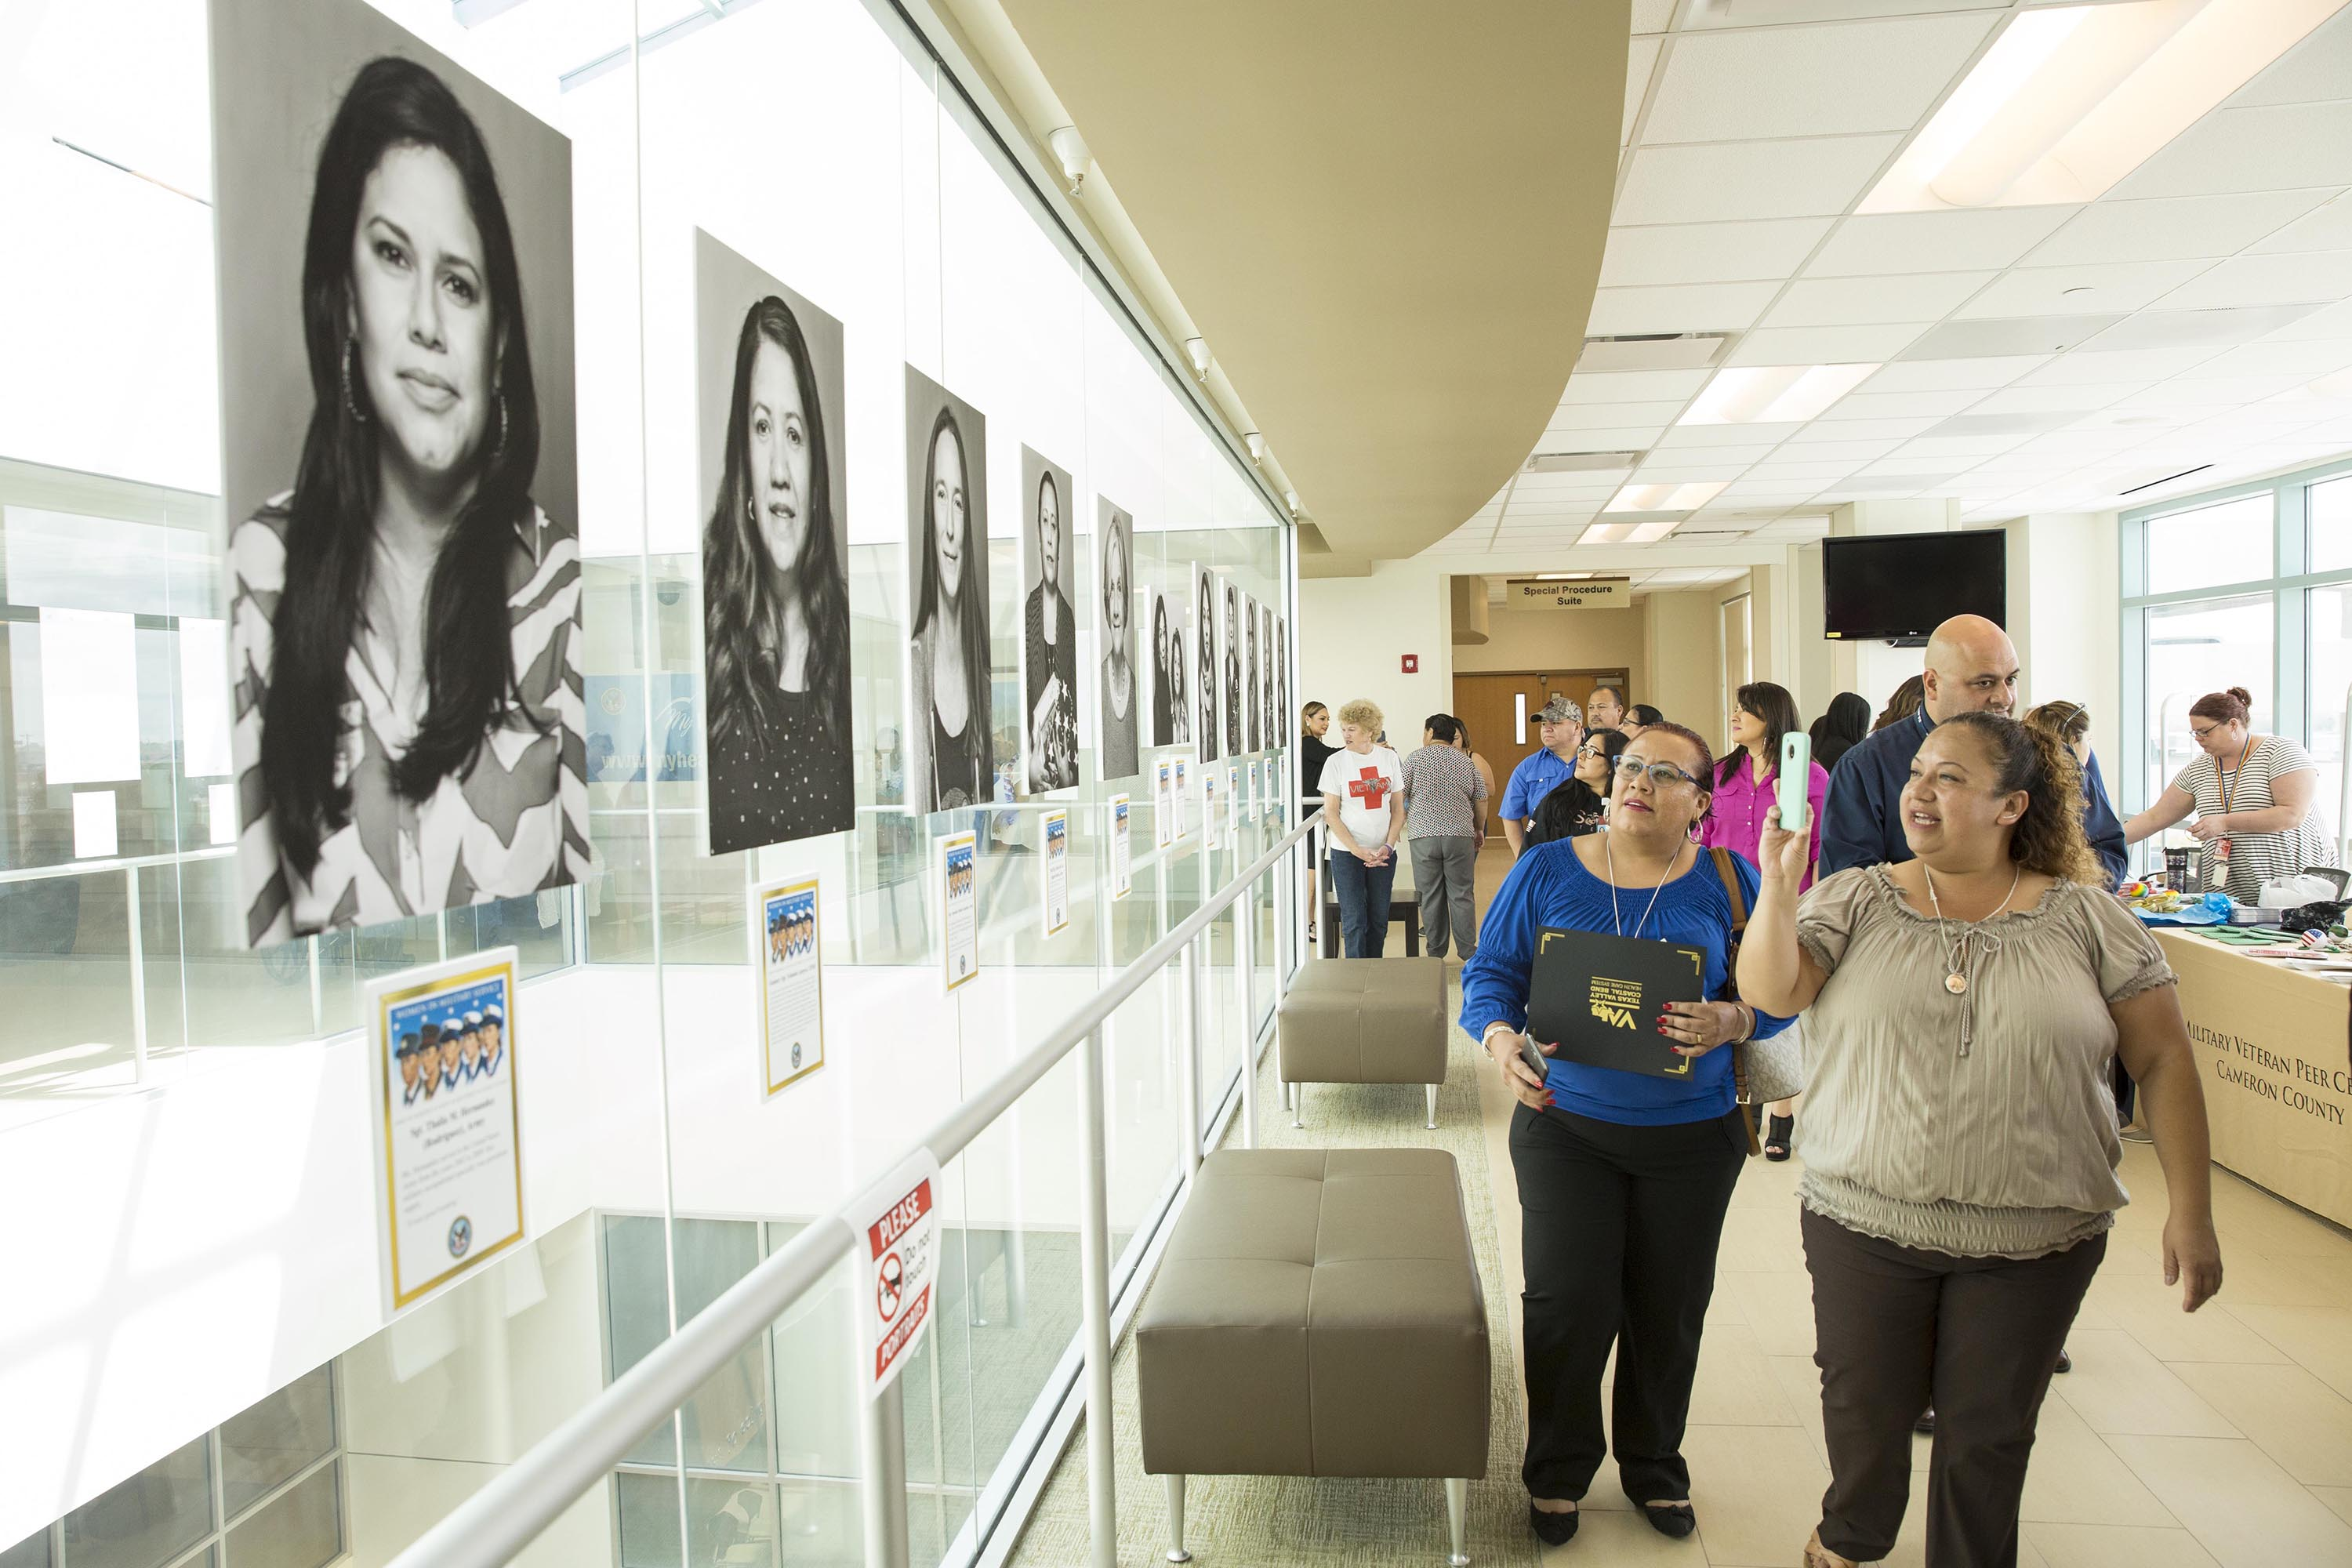 Guests tour the photo exhibit March 2, 2018, at the VA Health Care Center at Harlingen, Texas. The VA recognized Women Veterans with an exhibit of black and white portraits on the third floor featuring 29 Women Veterans from various communities. (U.S. Department of Veterans Affairs photo/Luis H. Loza Gutierrez)